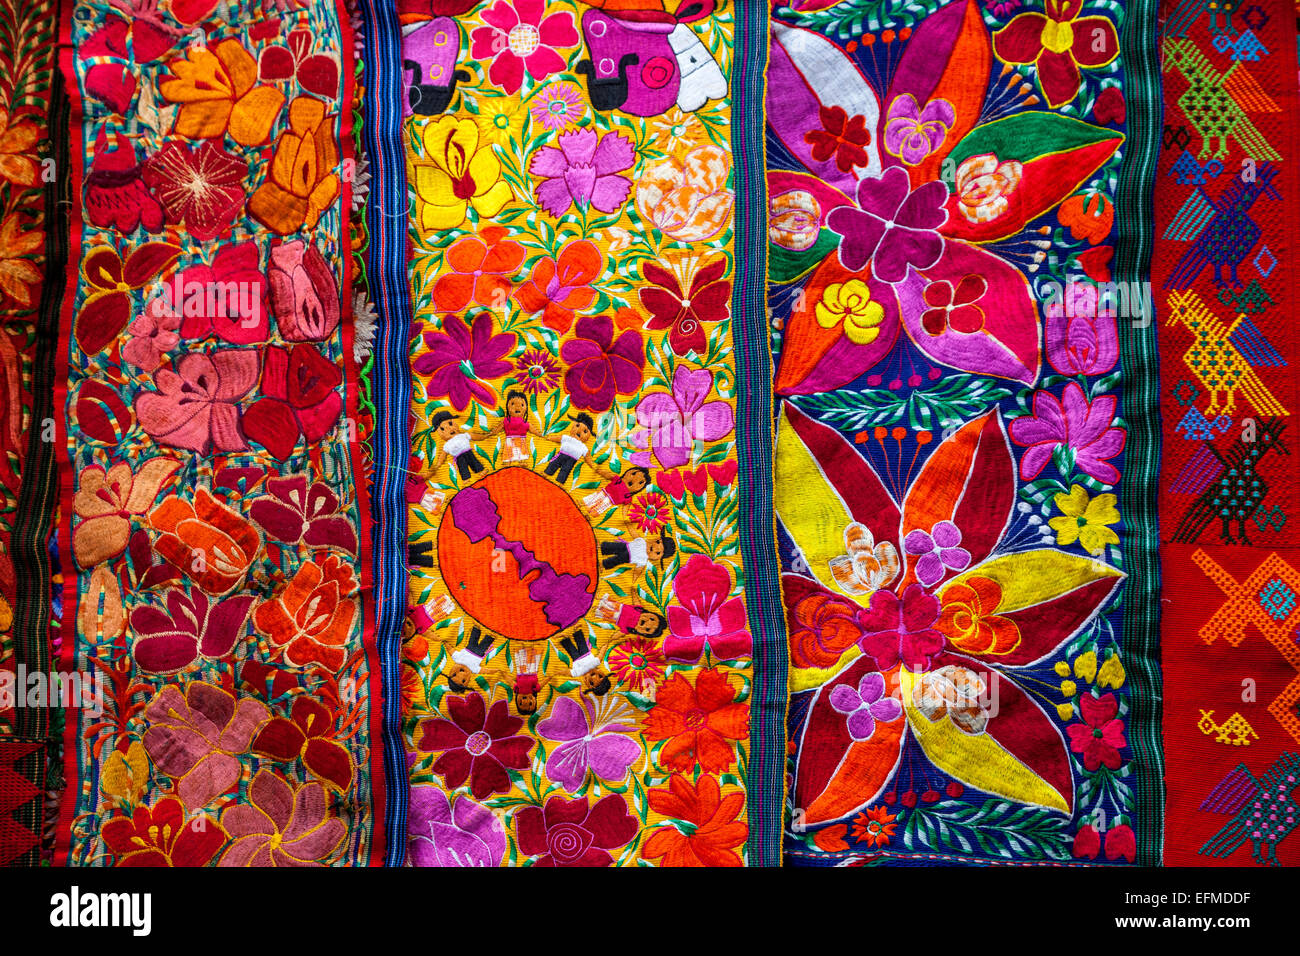 Chichicastenango, Guatemala.  Colorful Wall Hanging for Sale in the Market. - Stock Image